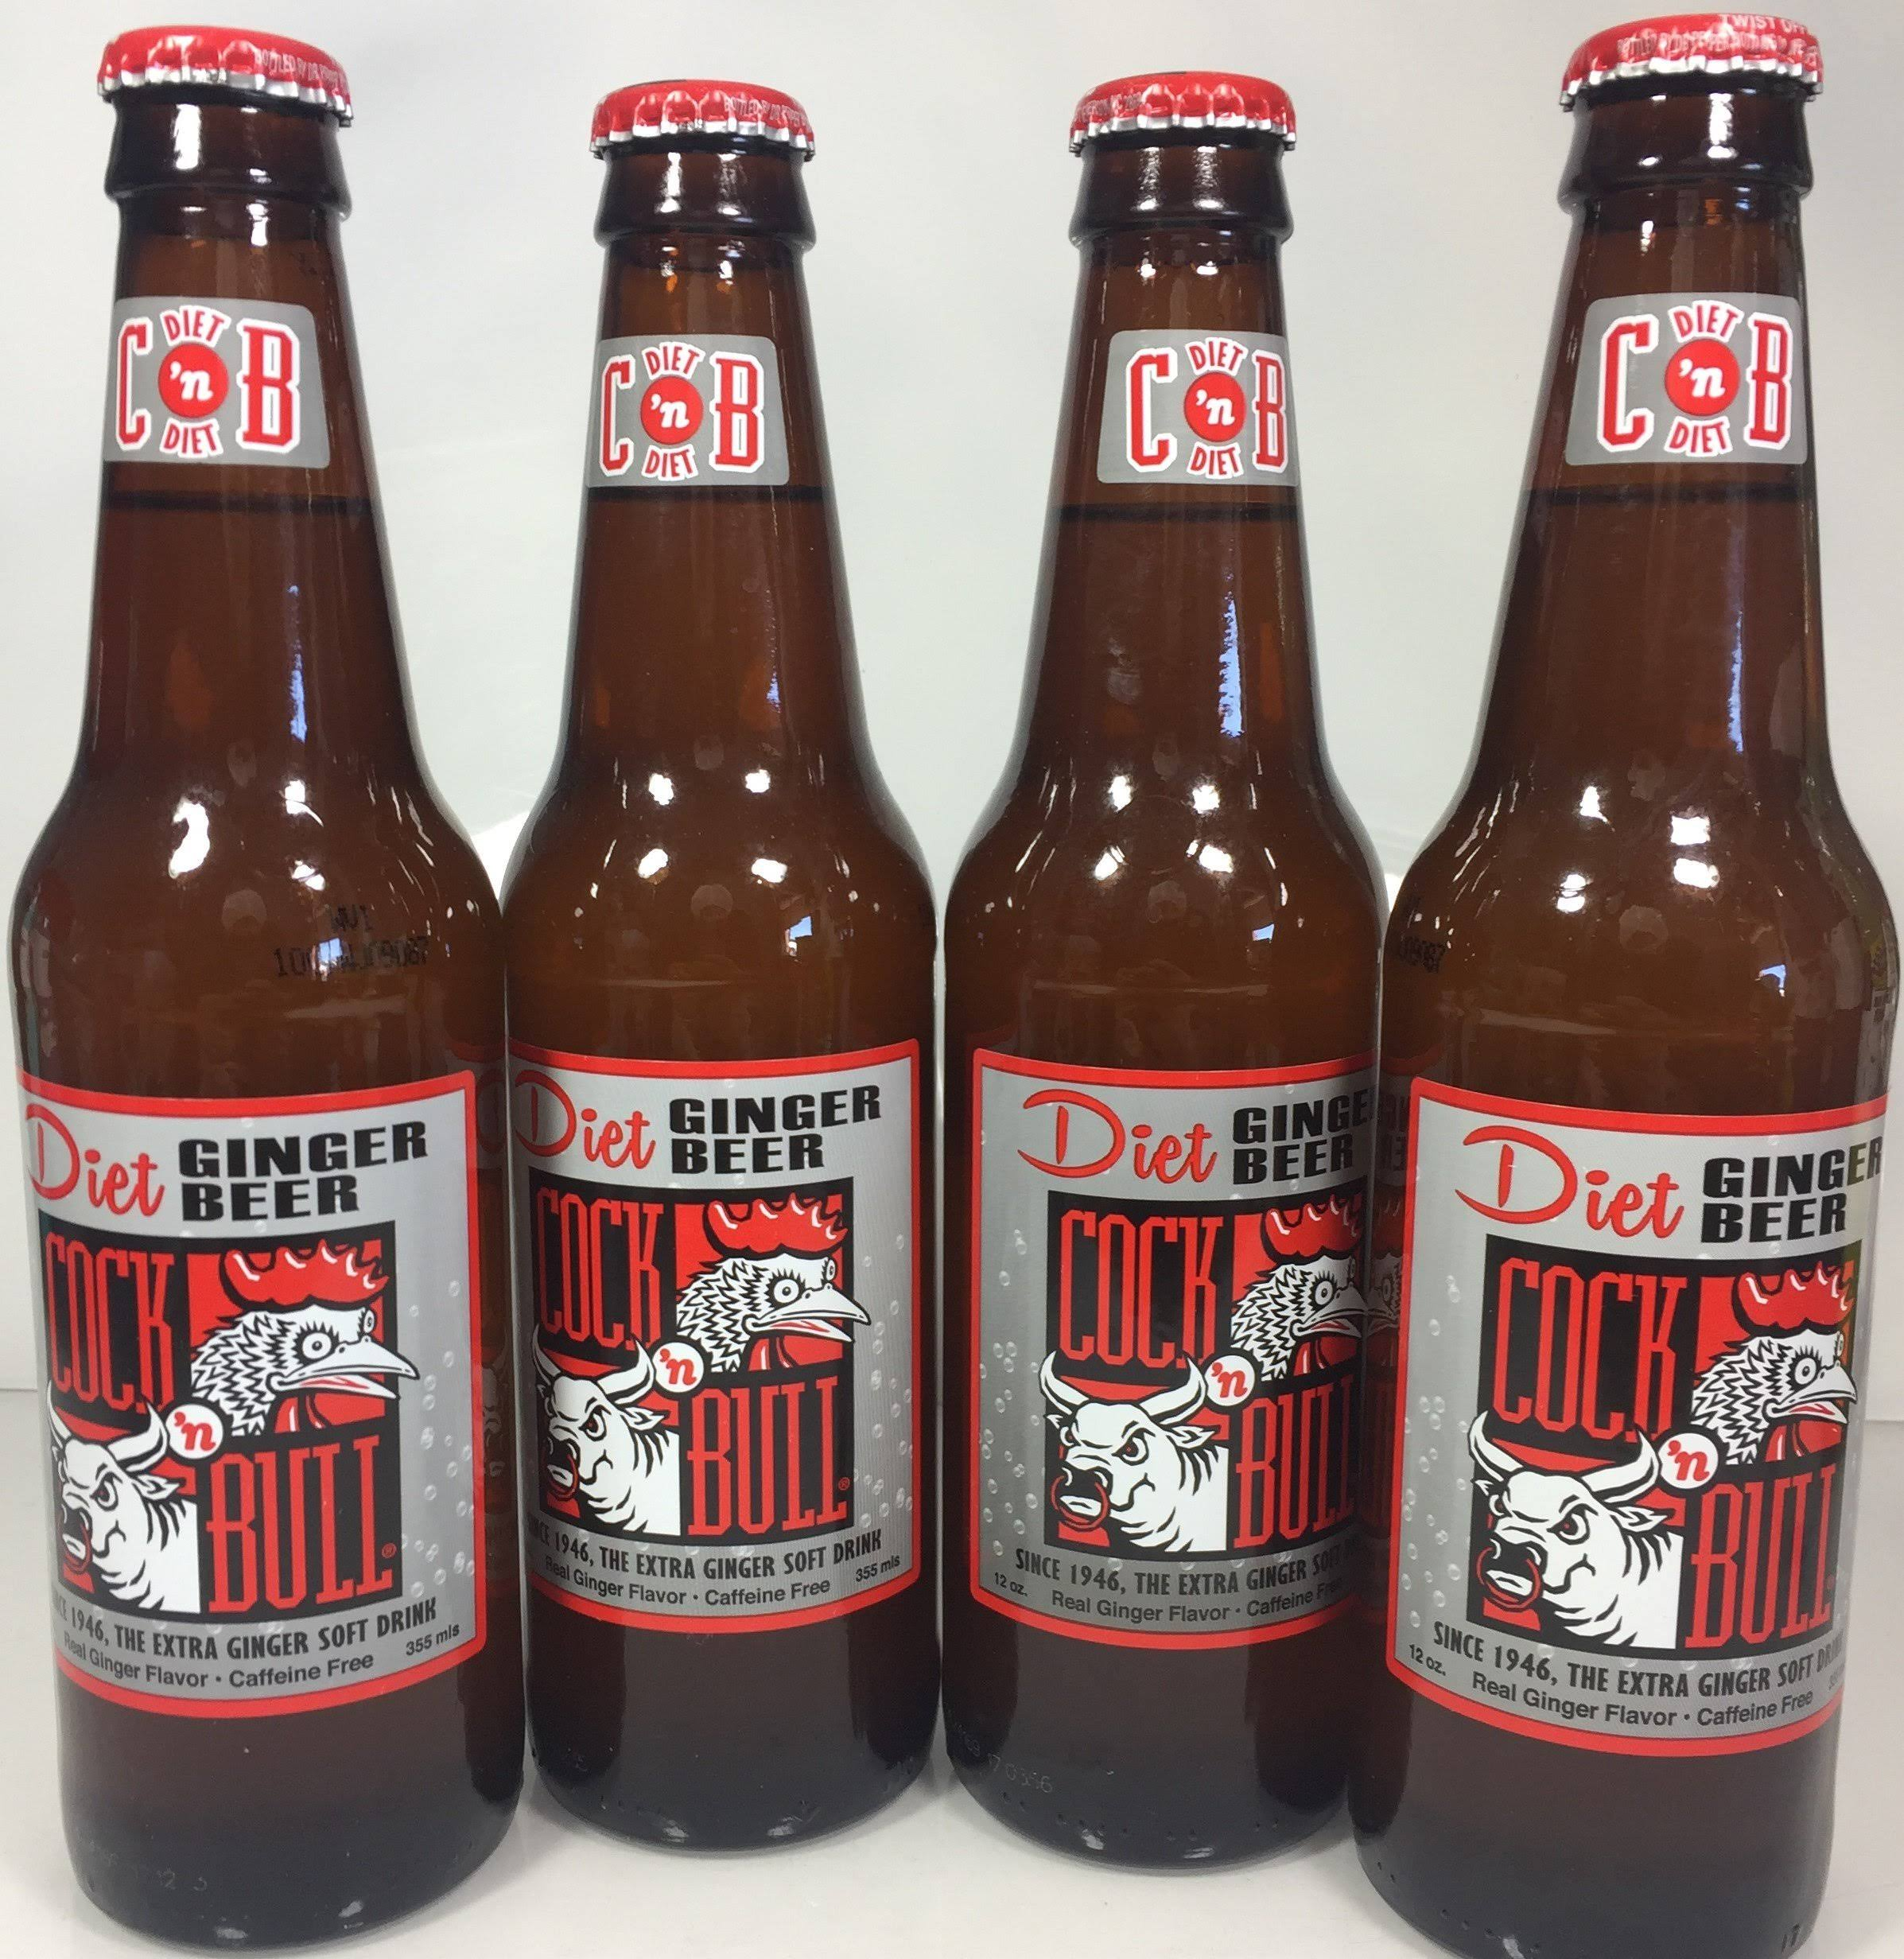 Cock 'N Bull Diet Soda - Ginger Beer